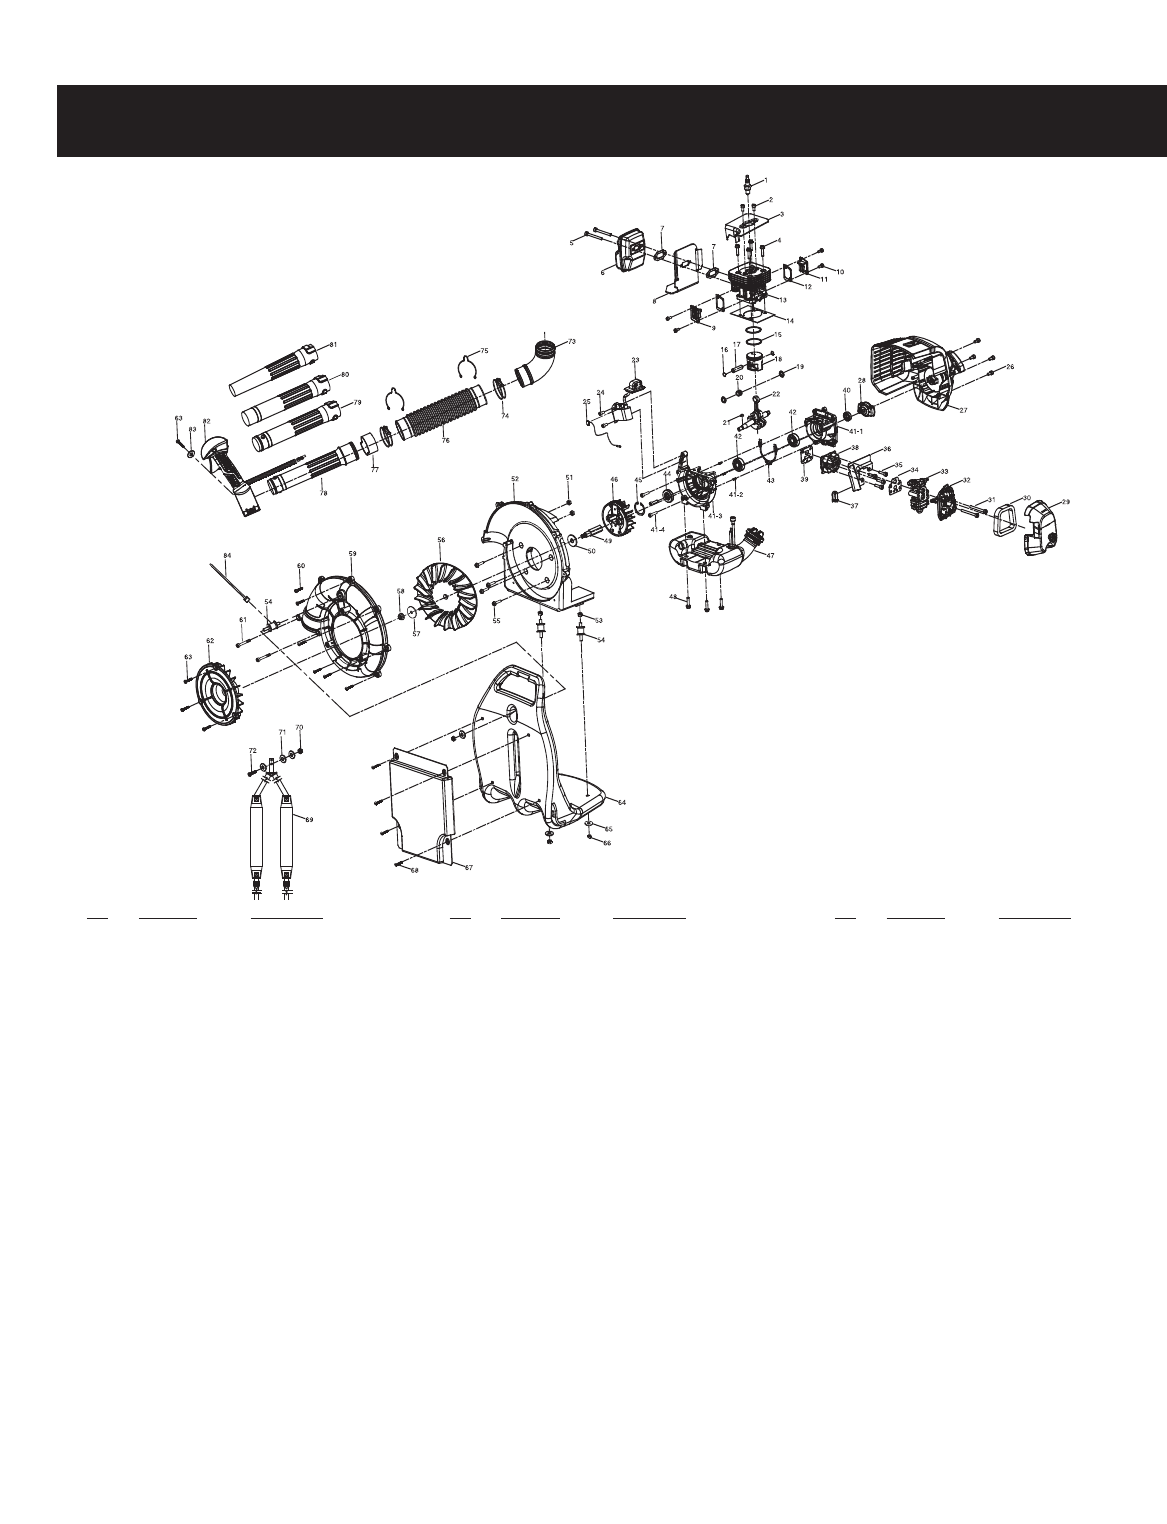 Page 18 of Craftsman Blower 316.794991 User Guide